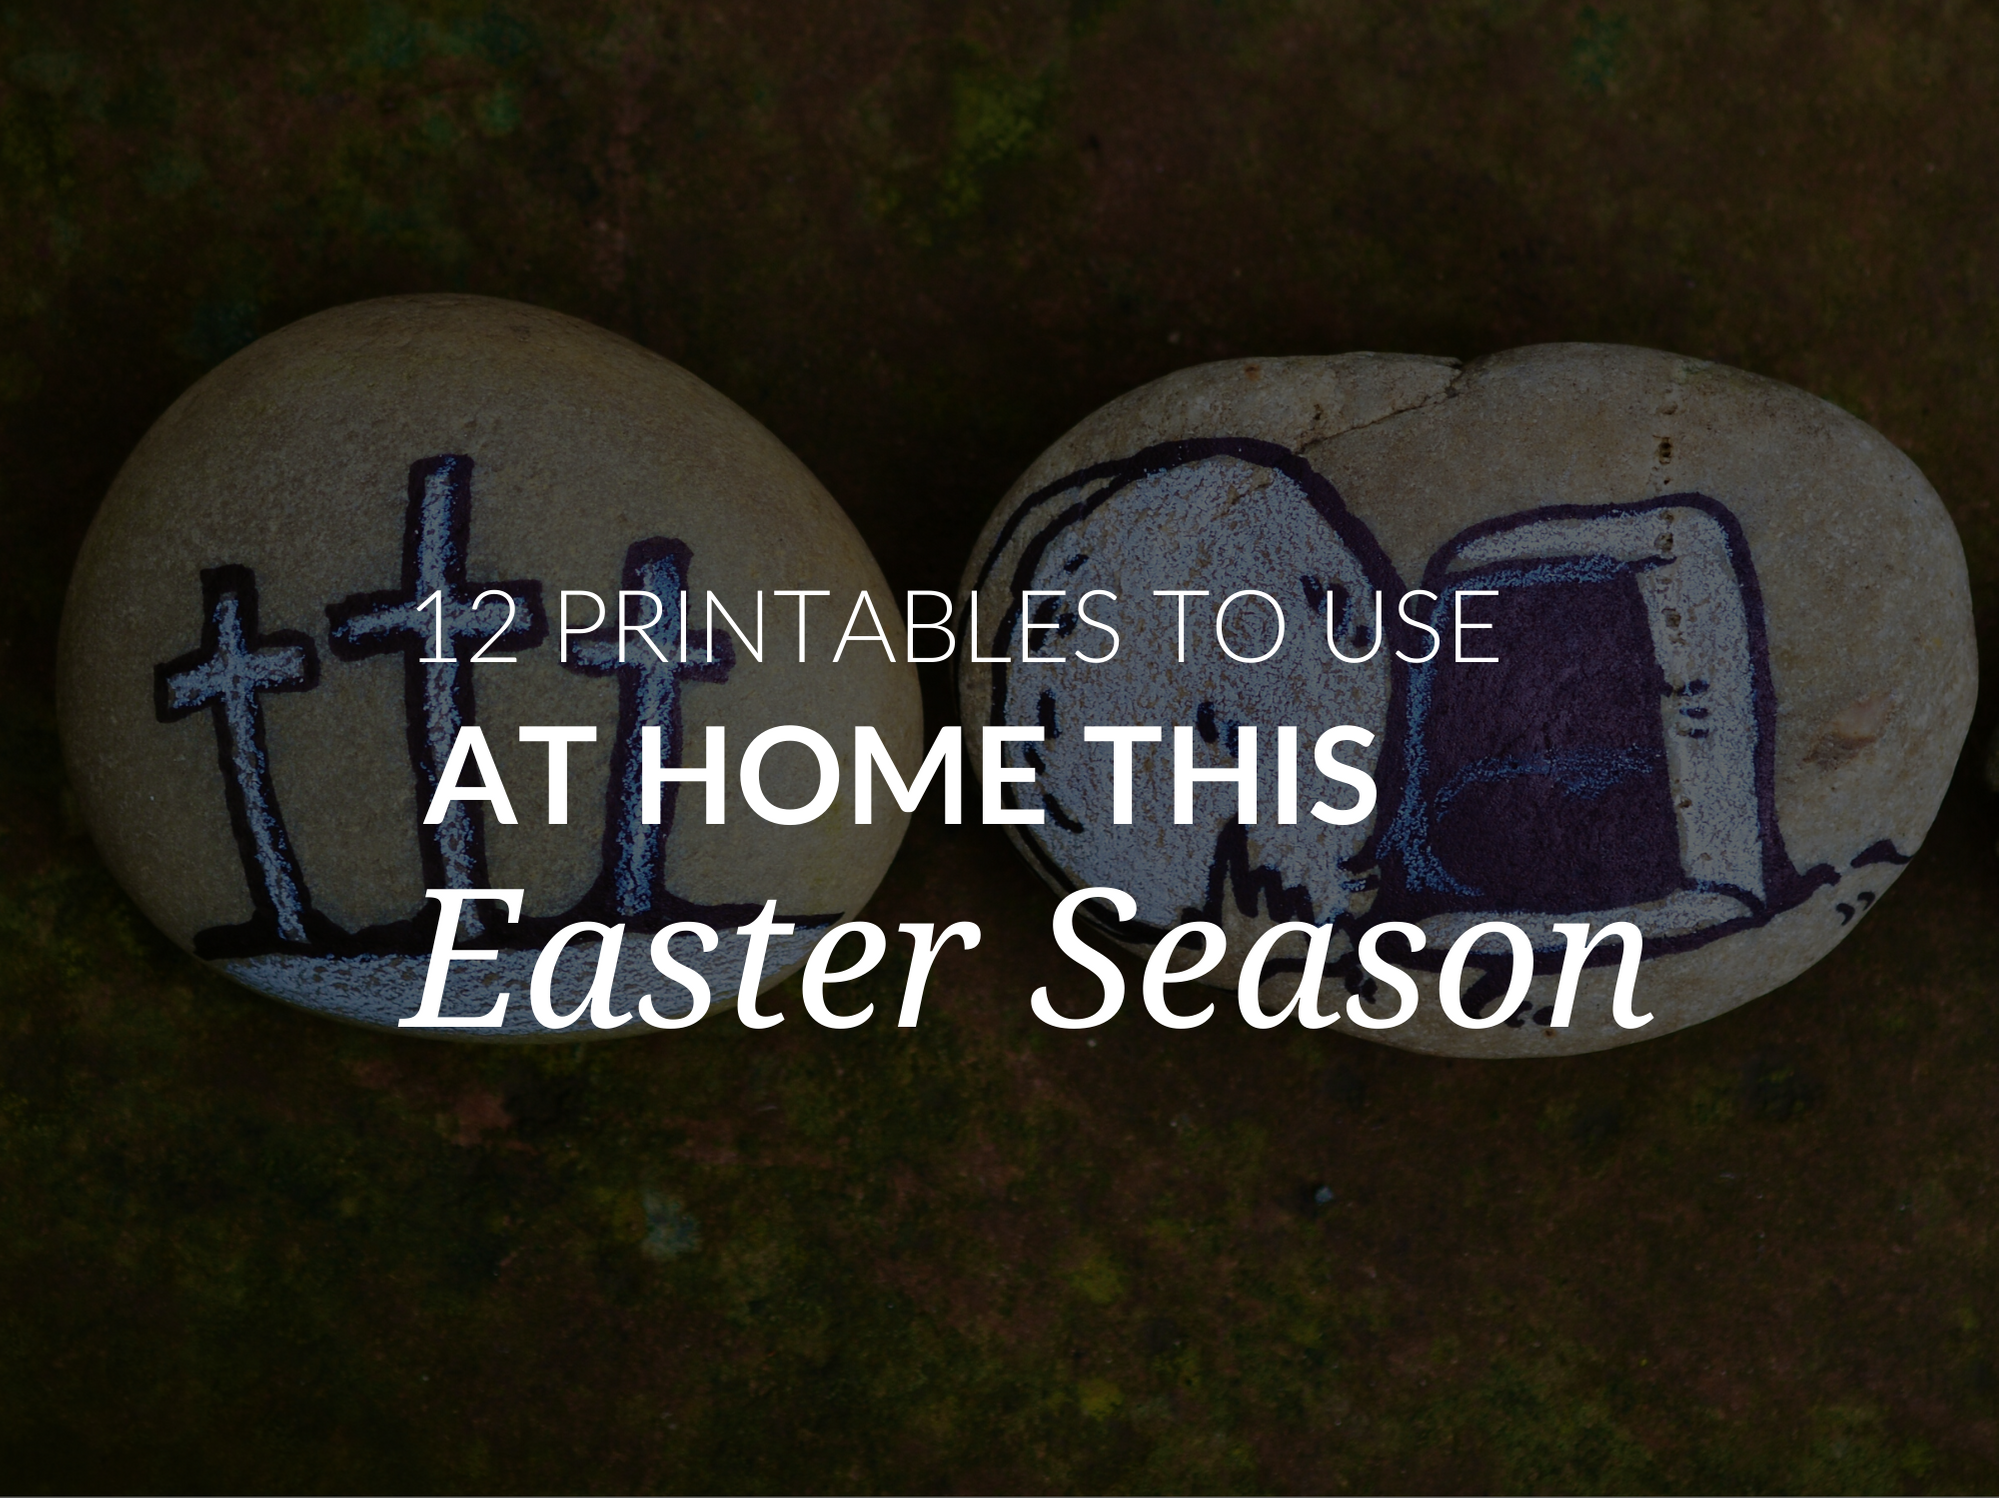 12 Easter Season Printables for Catholic Families– Liturgical Year printables-catholic-families-can-use-at-home-during-easter-season